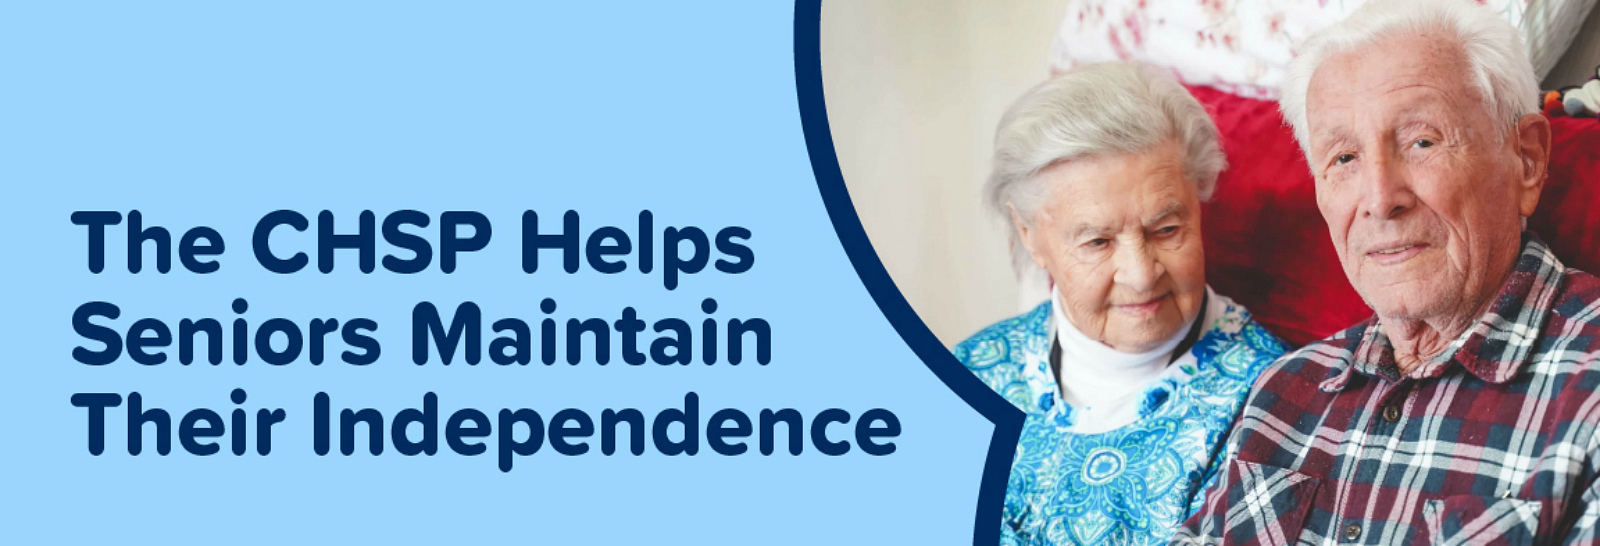 What is the CHSP? It helps seniors maintain their independence